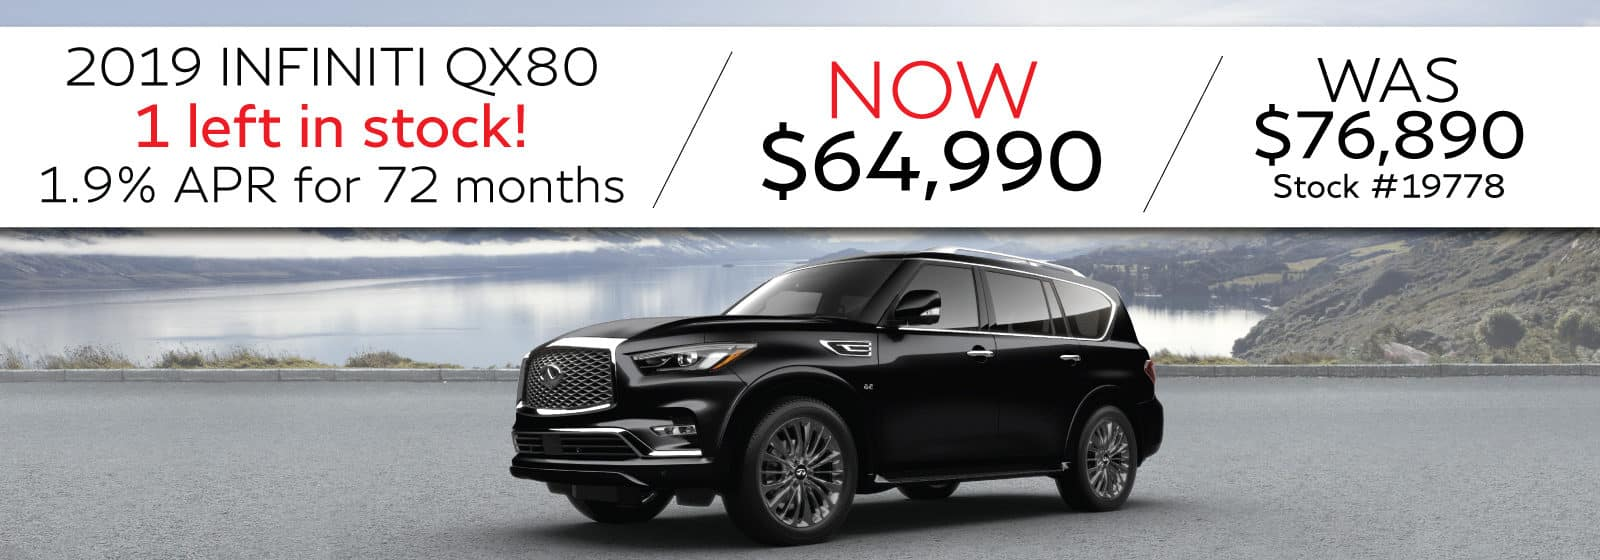 2019 INFINITI QX80. 1 left in stock! 1.9% APR for 72 months. Now $64,990 Was $76,890. Stock #19778. Image is of a QX80.